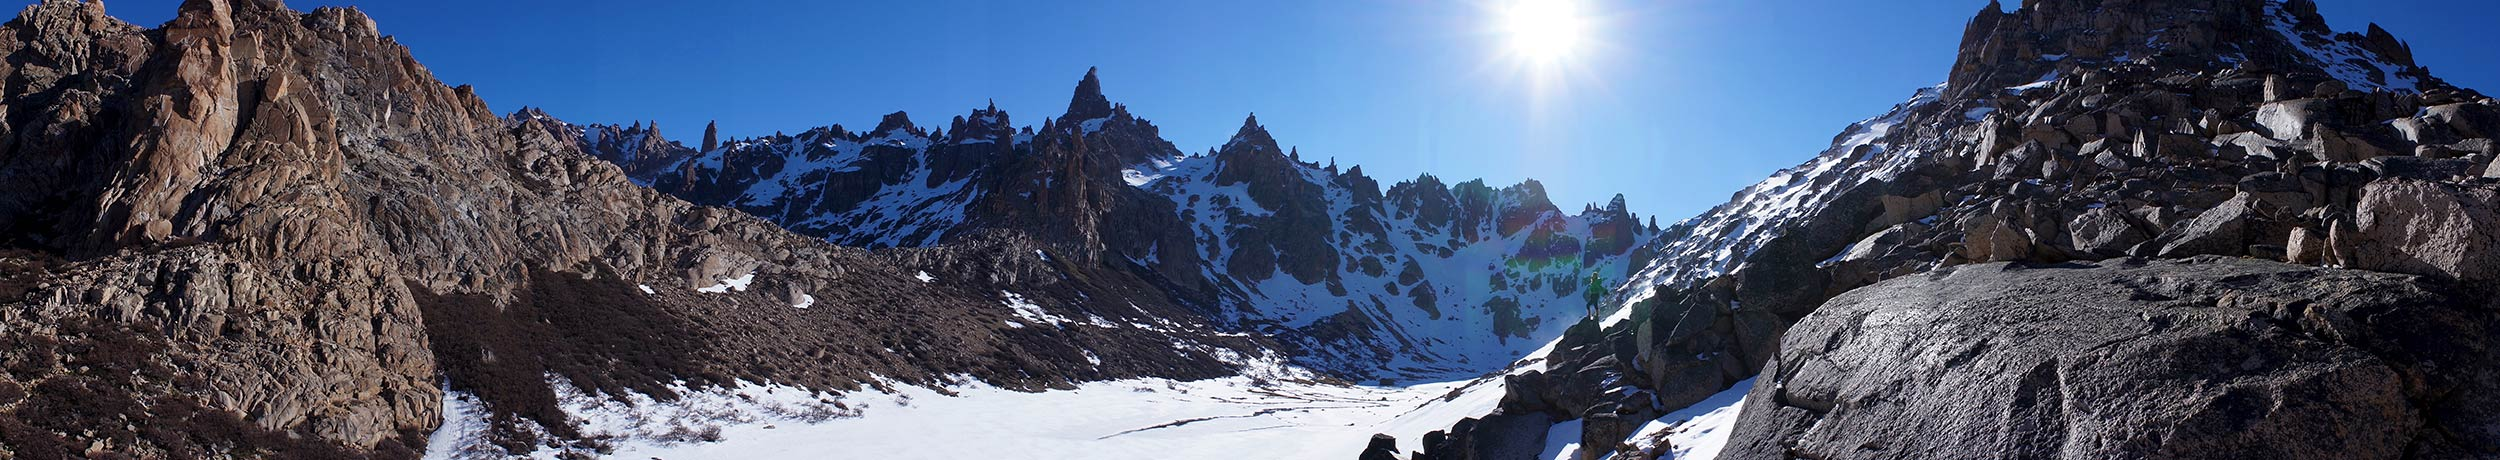 refugio_frey_candice_mountains_pano.jpg